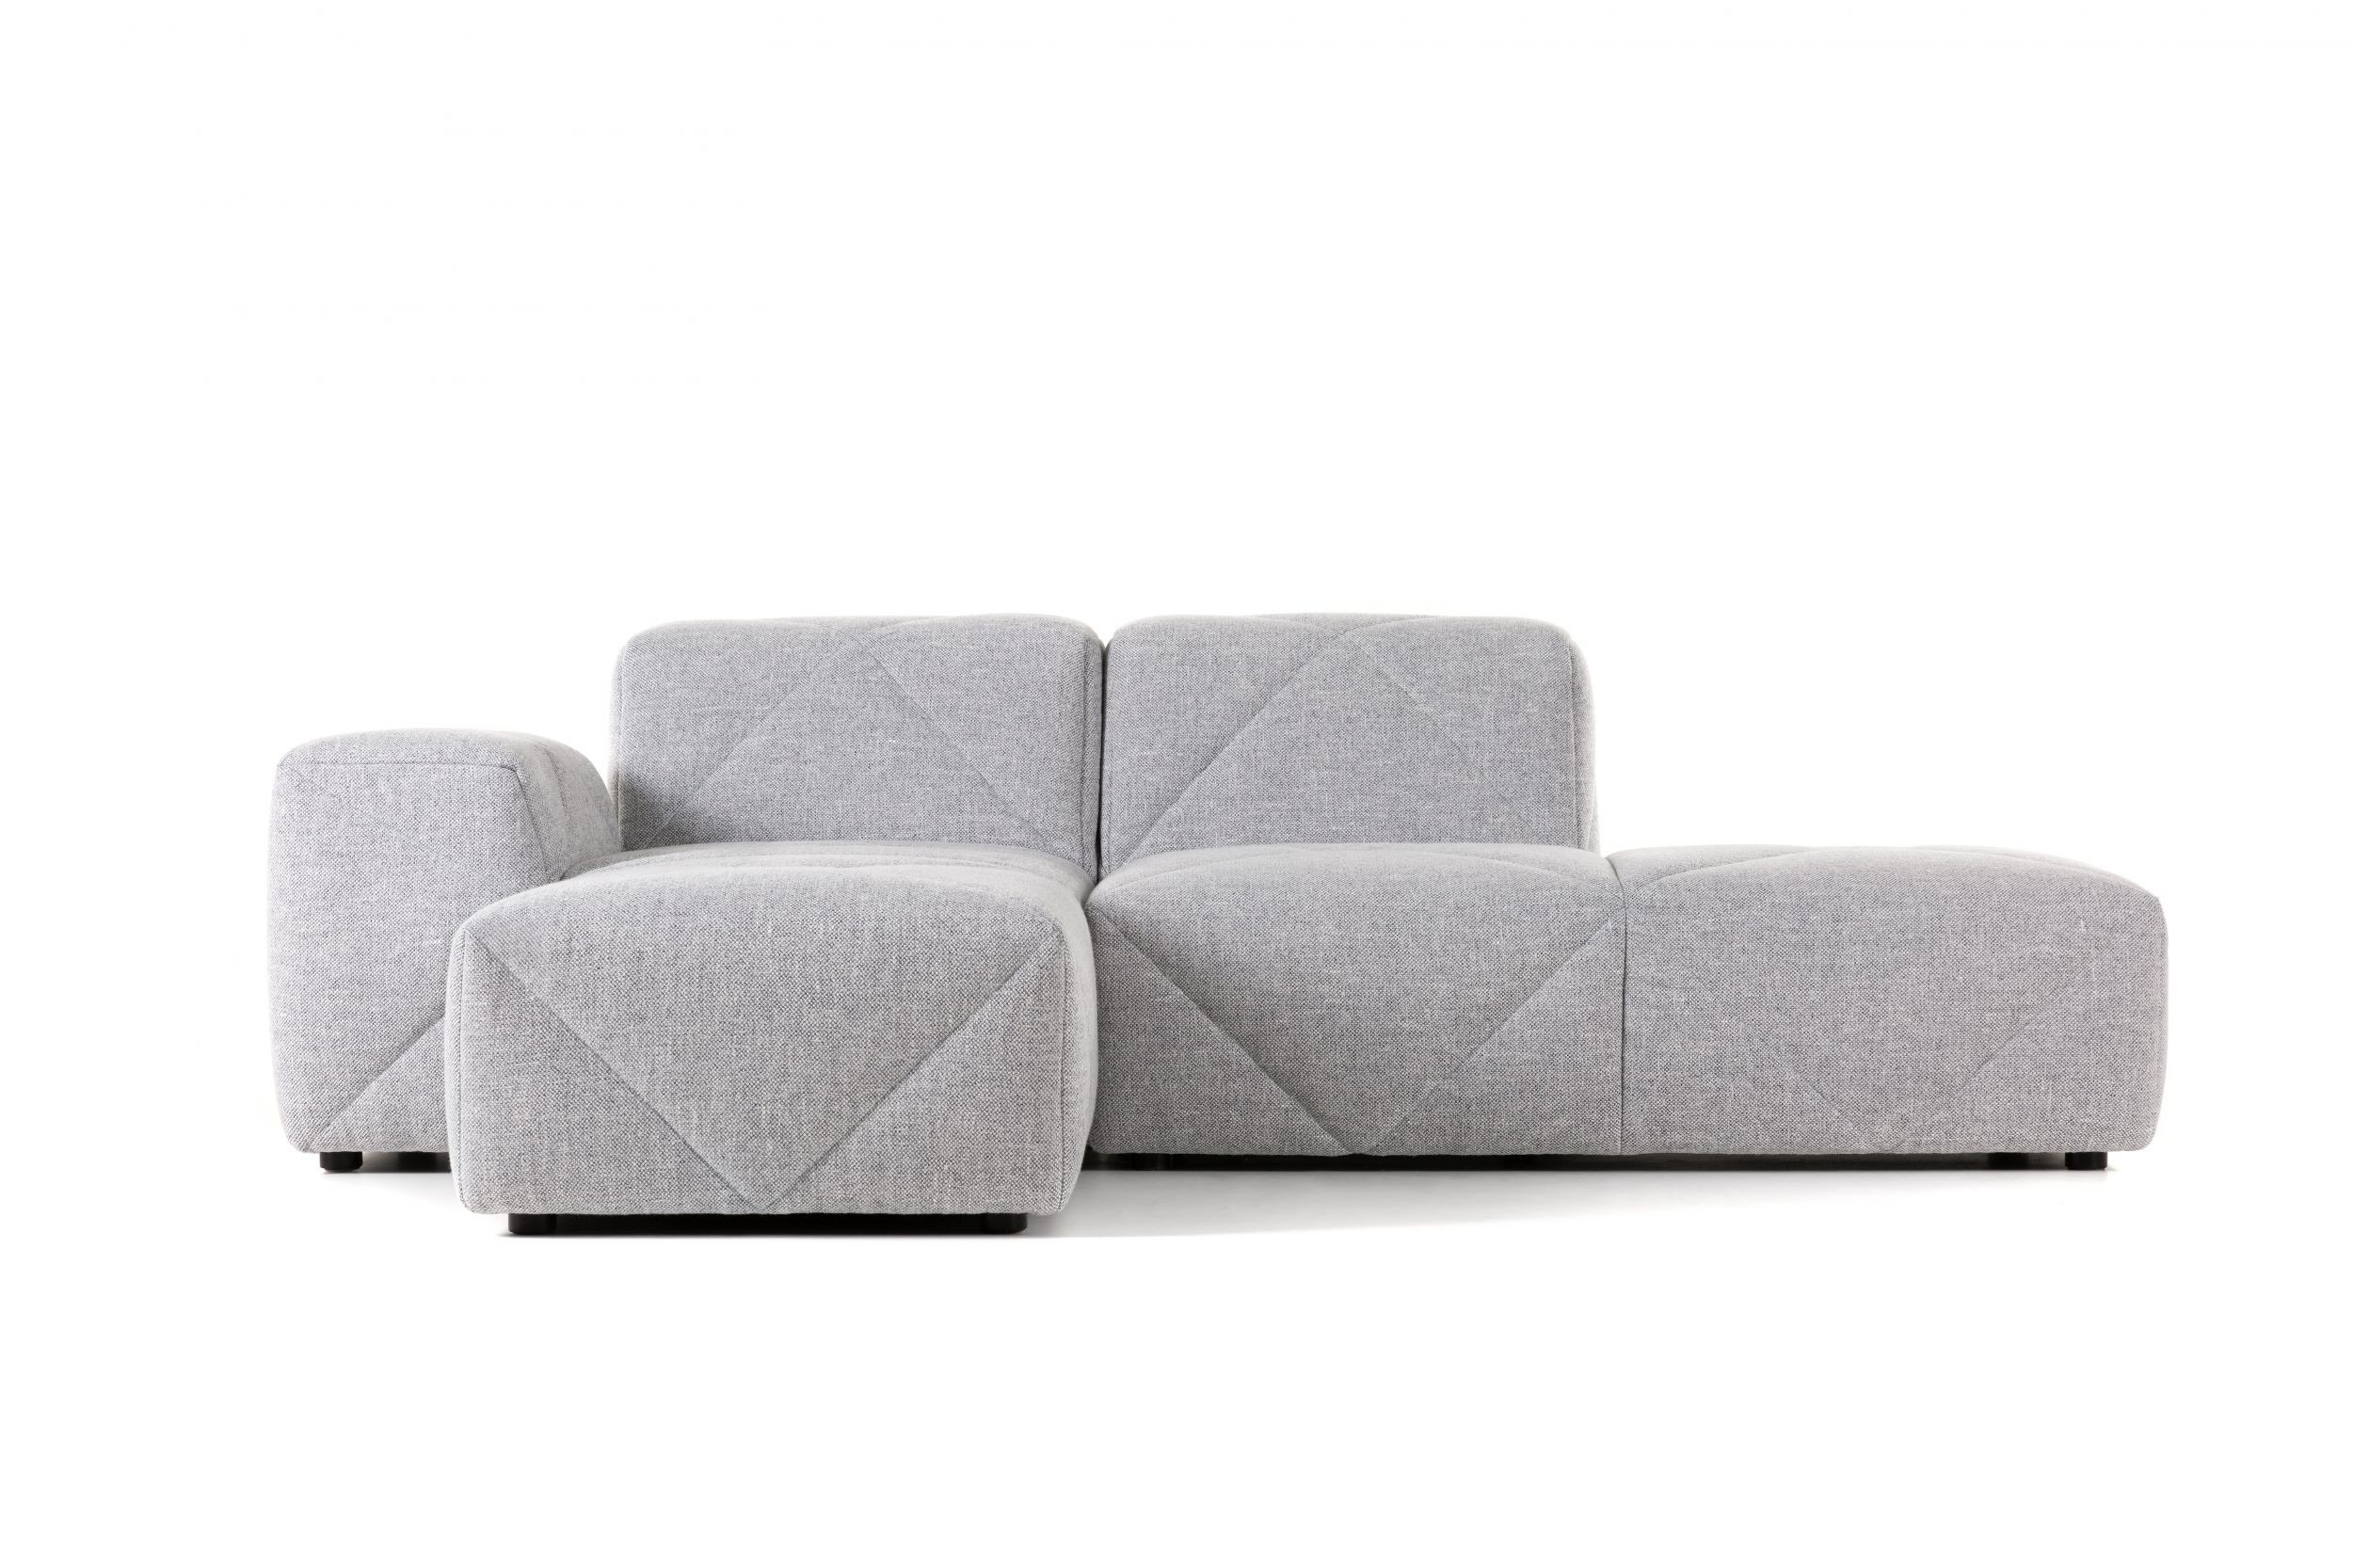 Prime Moooi Best Friend Forever Bff Modular Sofa Caraccident5 Cool Chair Designs And Ideas Caraccident5Info